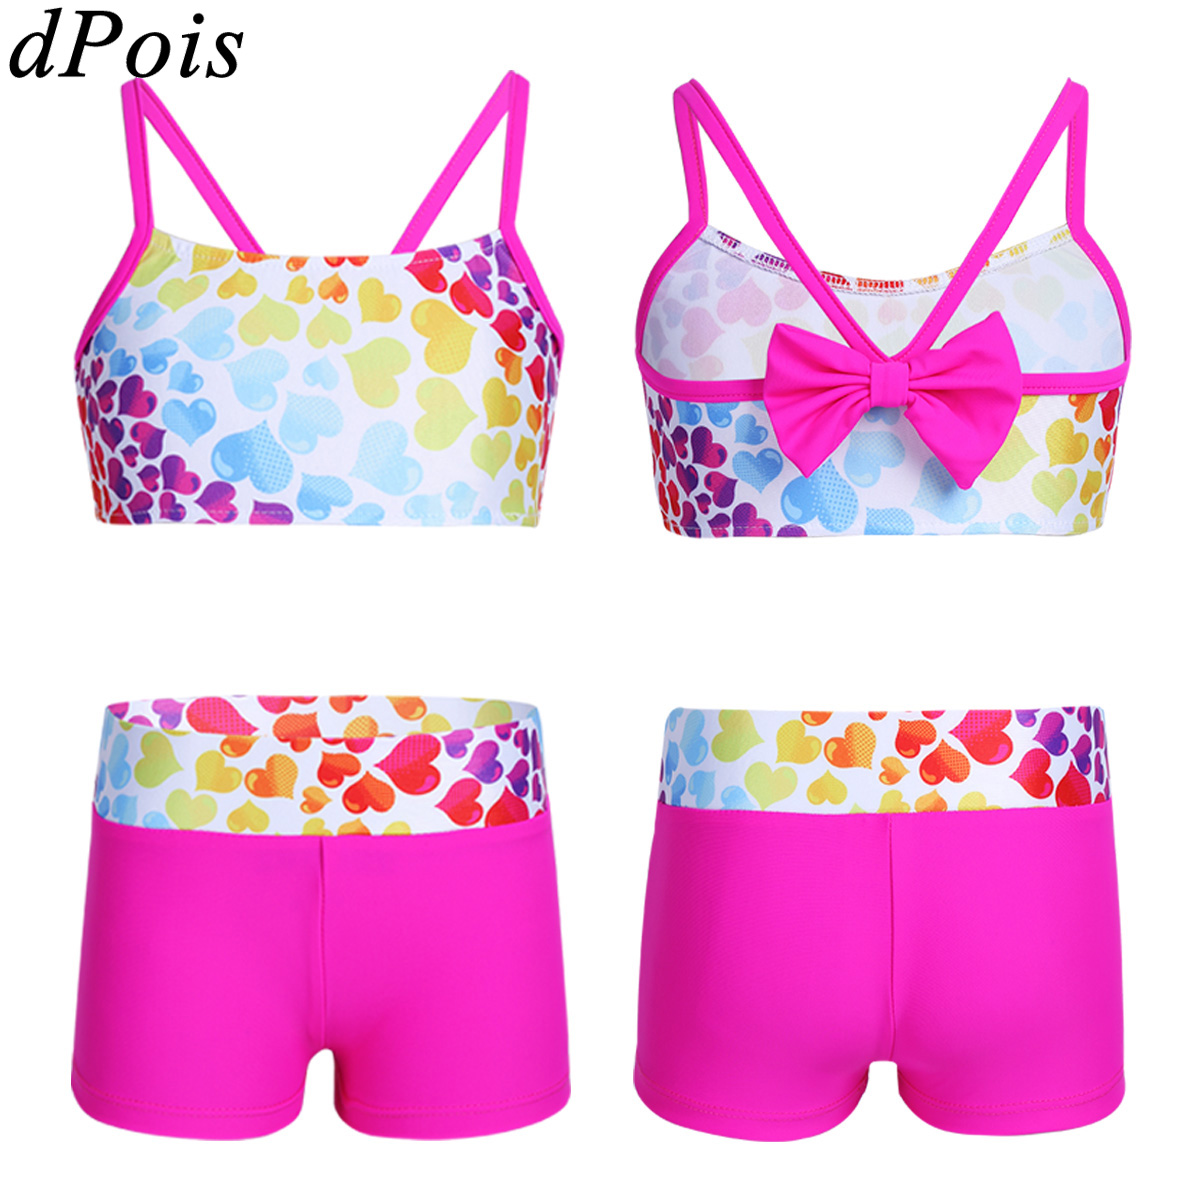 Two Piece Kids Girls Tankini Swimsuit Heart Shaped Pattern Bowknot Back Swimwear Bathing Suit Tops and Bottoms Set Sport Costume